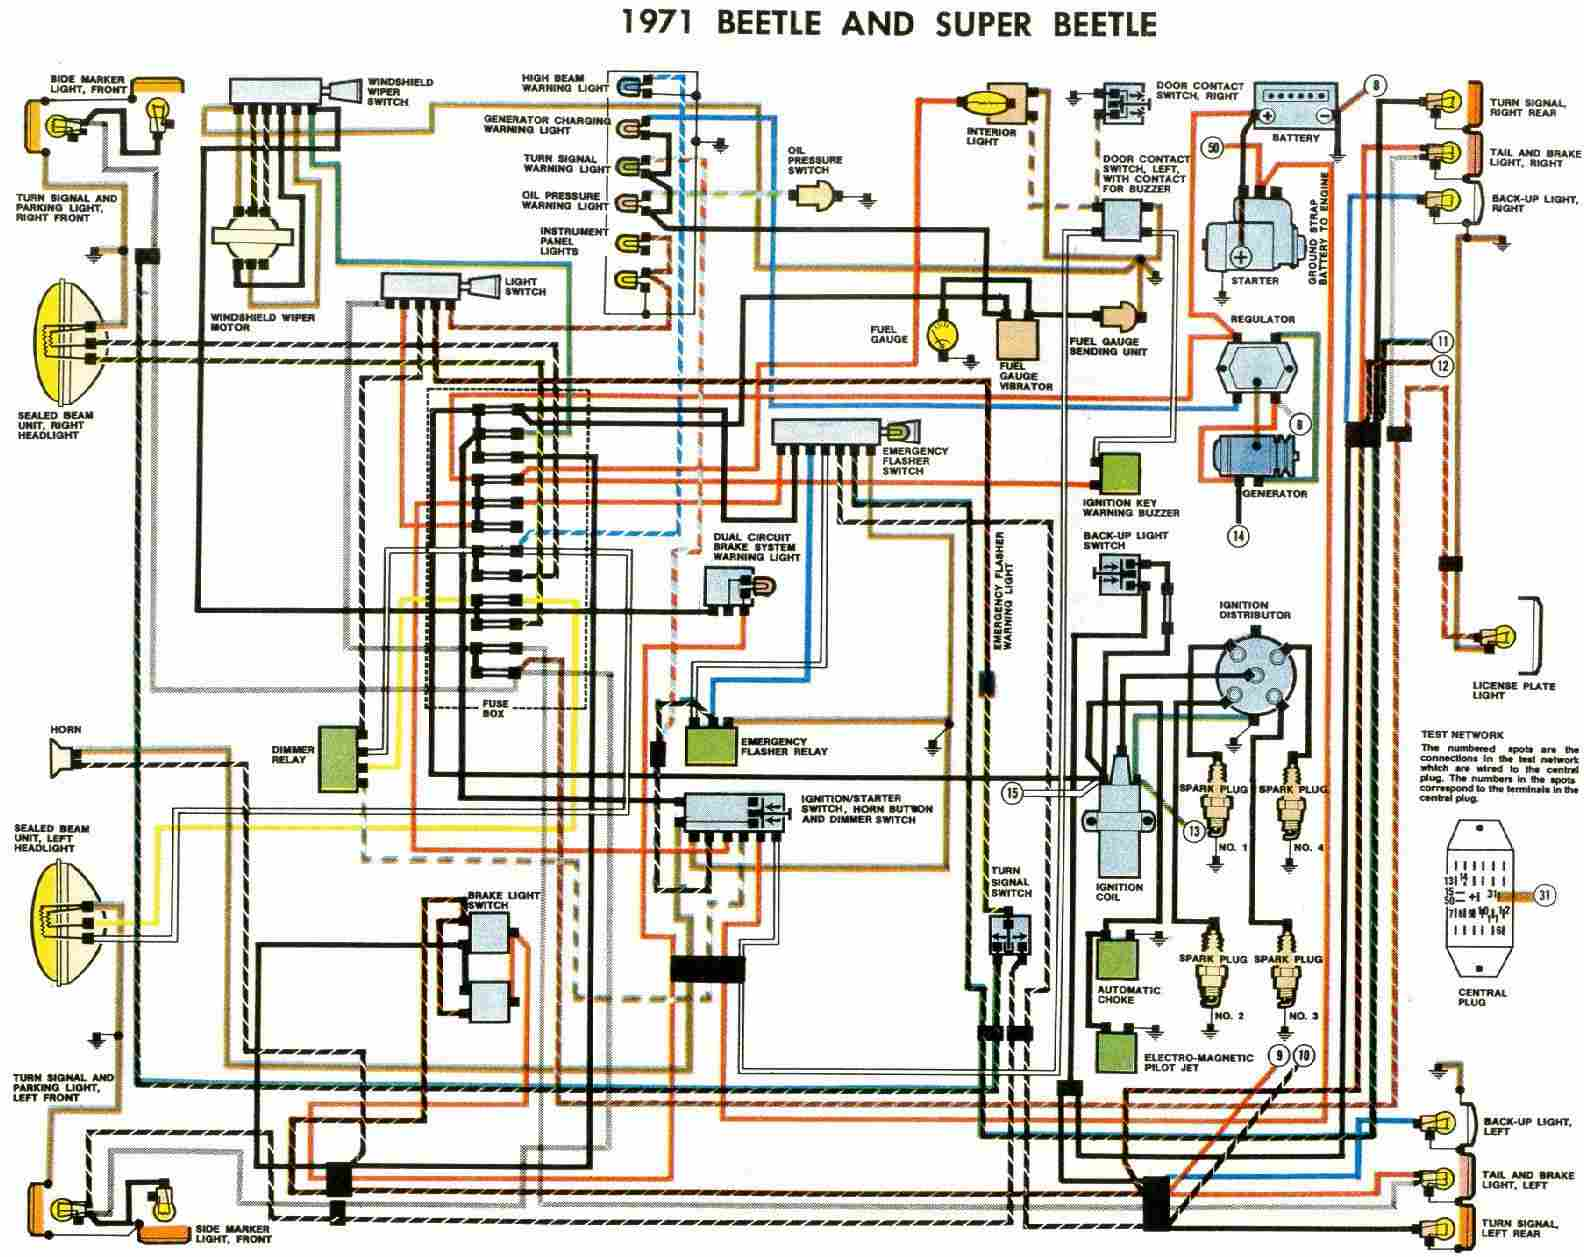 vw beetle and super beetle 1971 electrical wiring diagram 1973 vw beetle  generator wiring